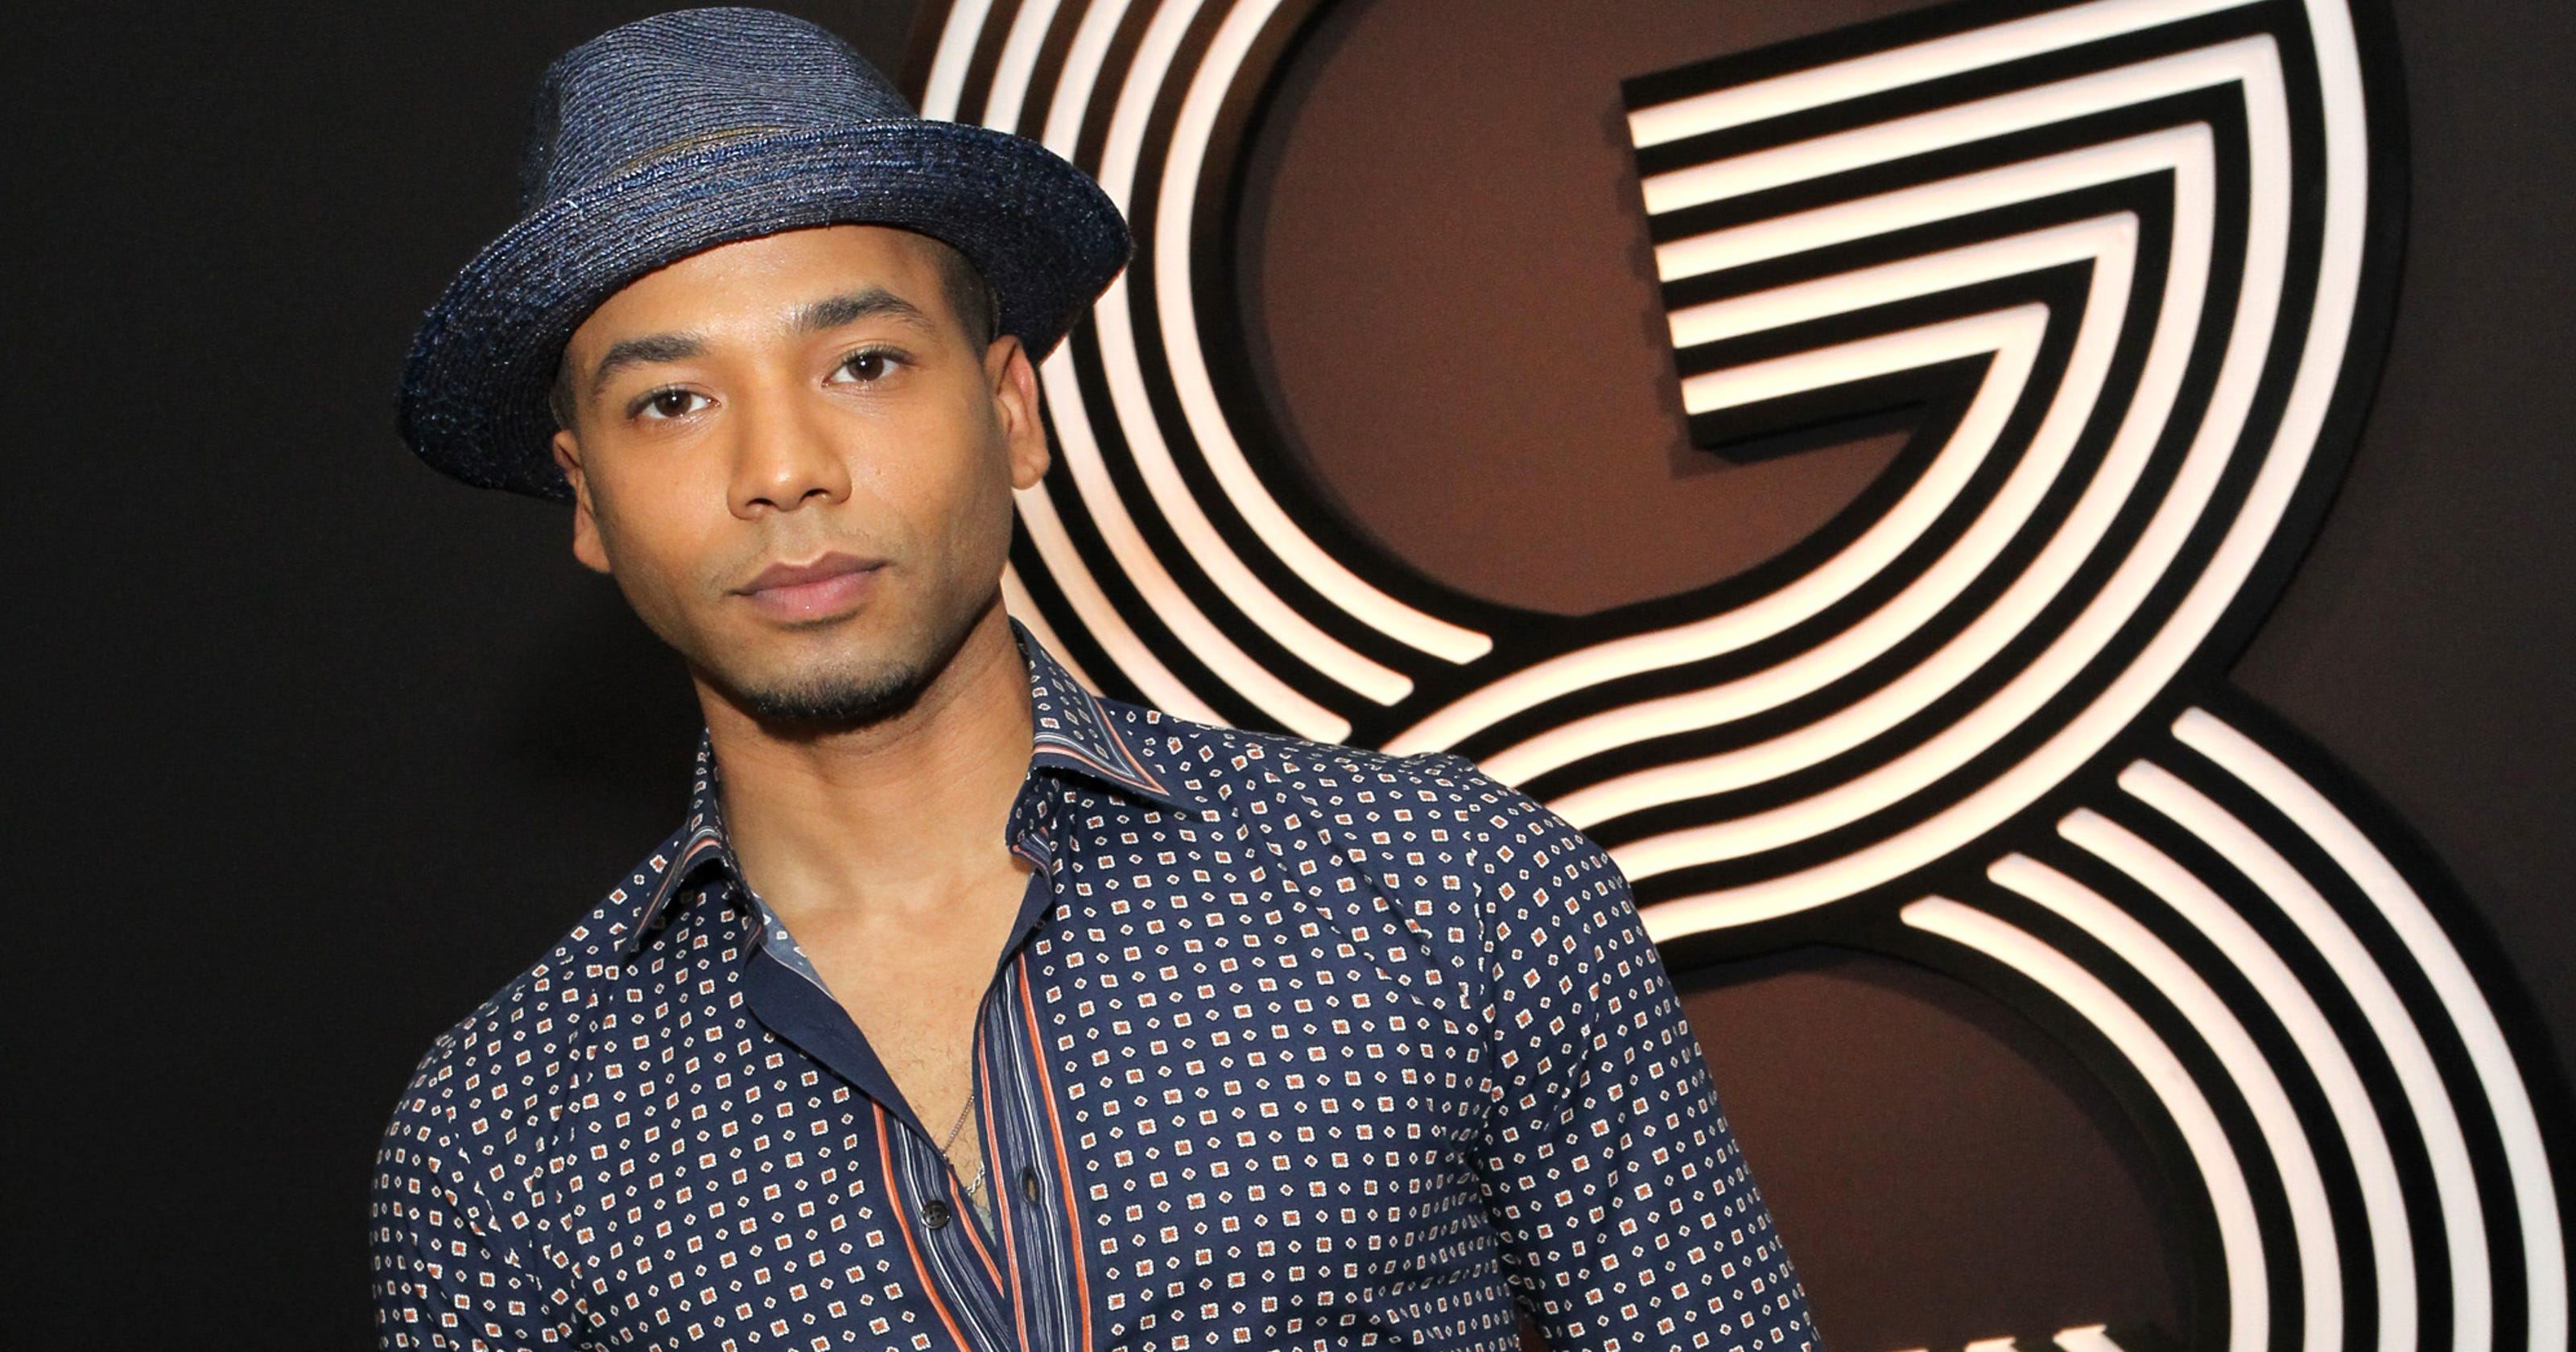 'Empire' star Jussie Smollet confirms he's gay